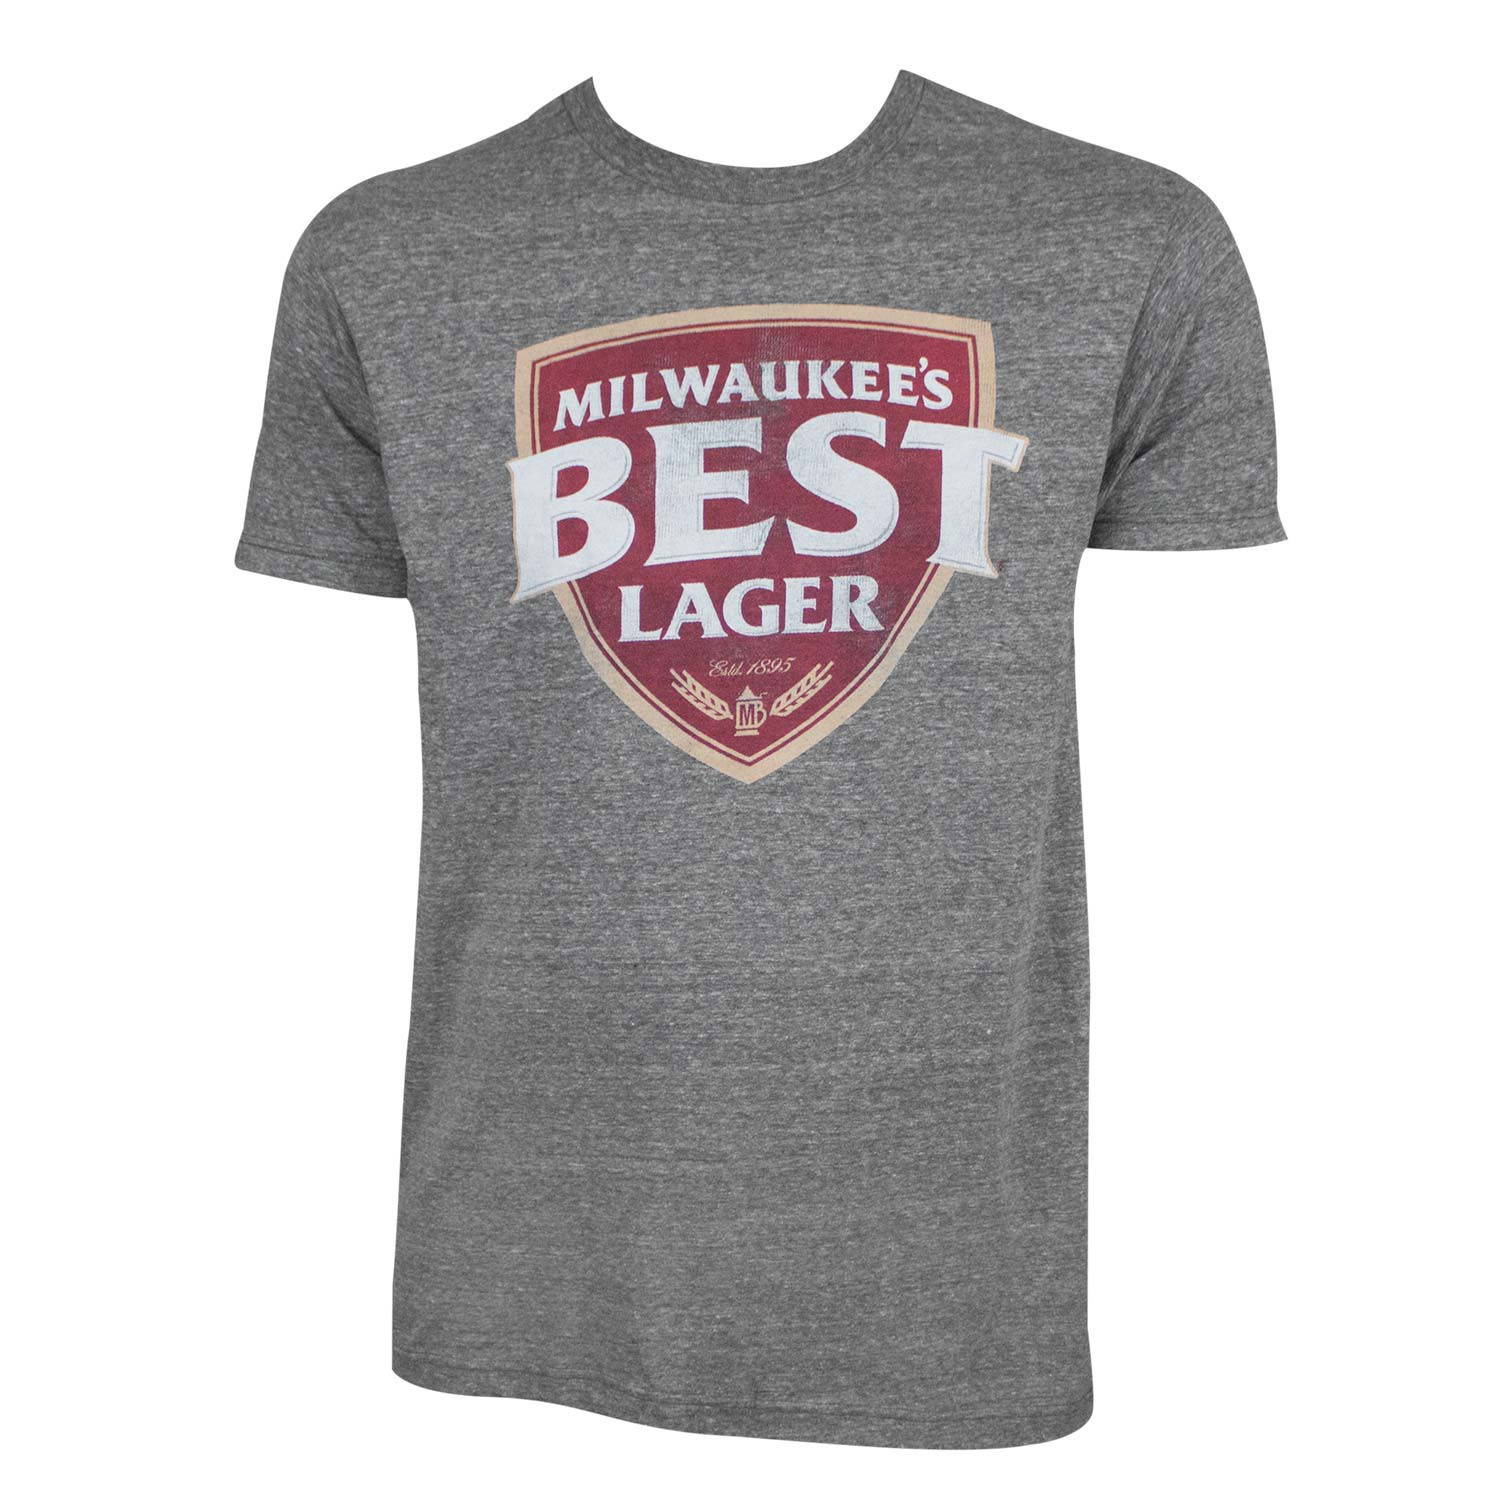 Milwaukee's Best Lager Tee Shirt